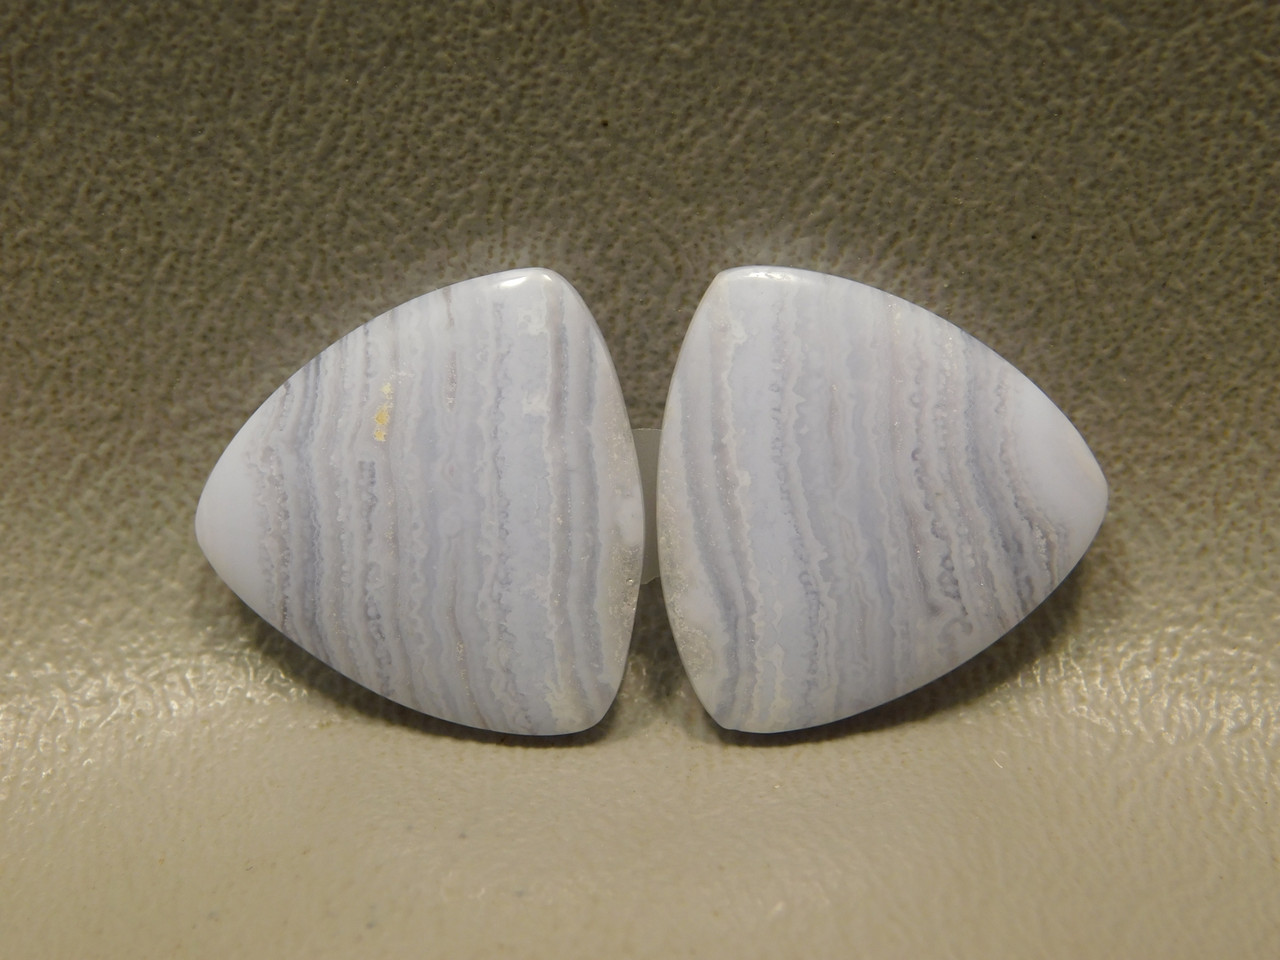 Blue Lace Agate Matched Pair 20 mm Trillion Gemstone Cabochons #6